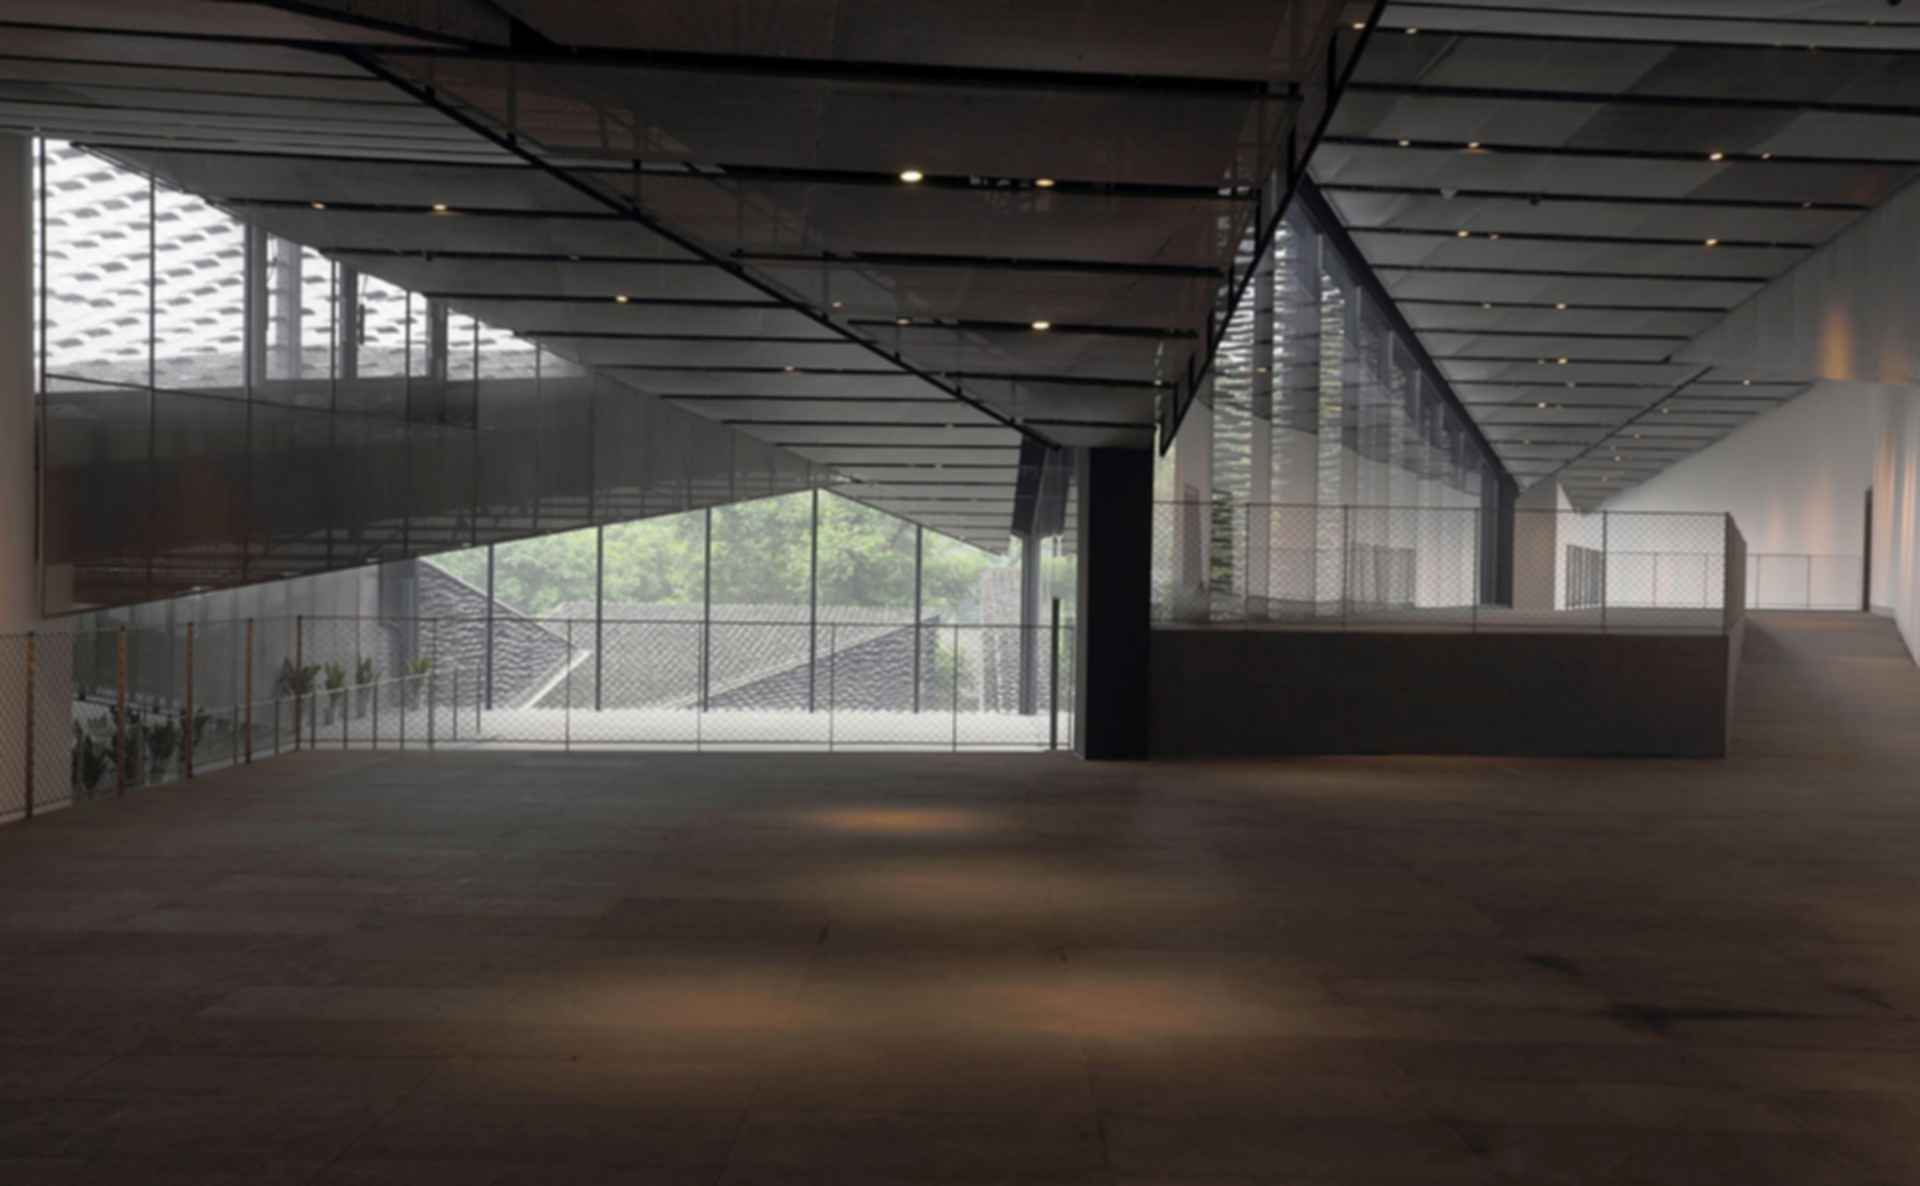 China Academy of Art's Folk Art Museum - Interior